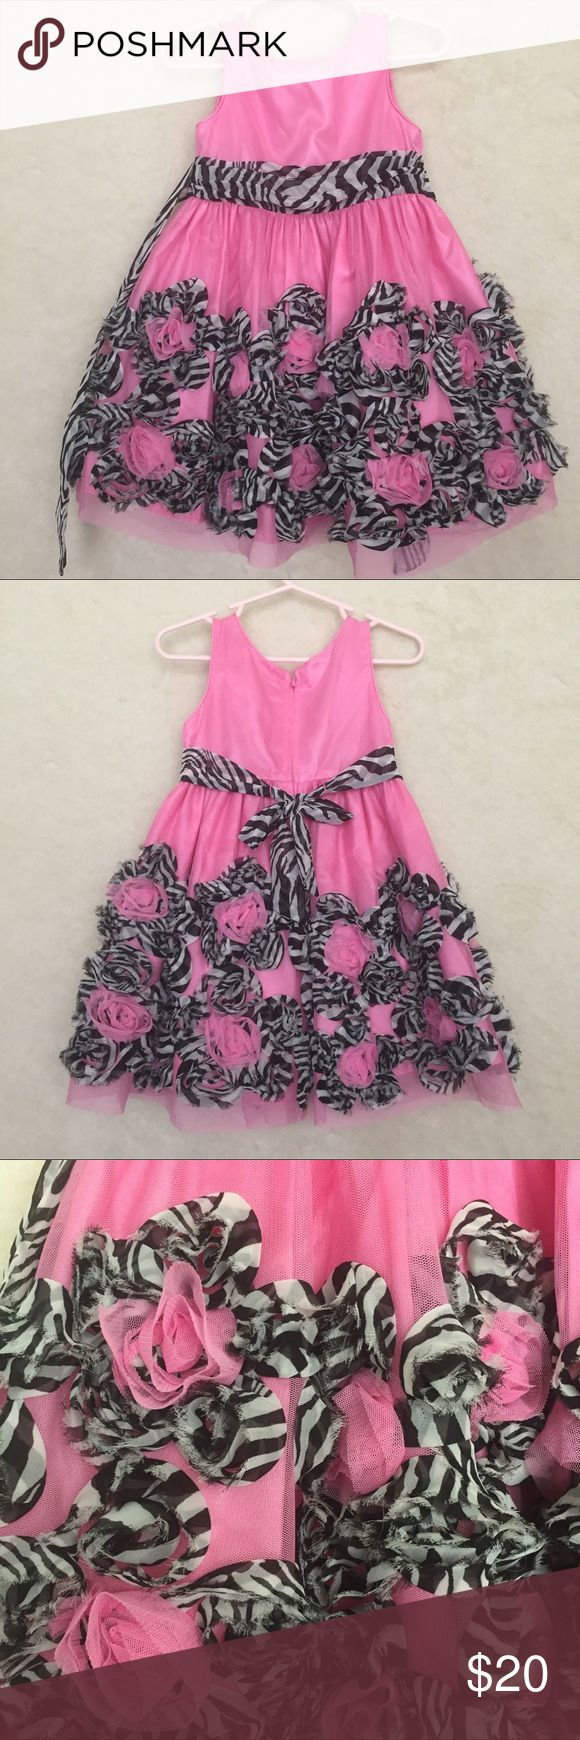 Sweet Heart Rose pink zebra print dress sz 2 Sweet Heart Rose pink dress with roses and zebra print sash and roses. Love ned and skirted for fullness size 2t Sweet Heart Rose Dresses Formal